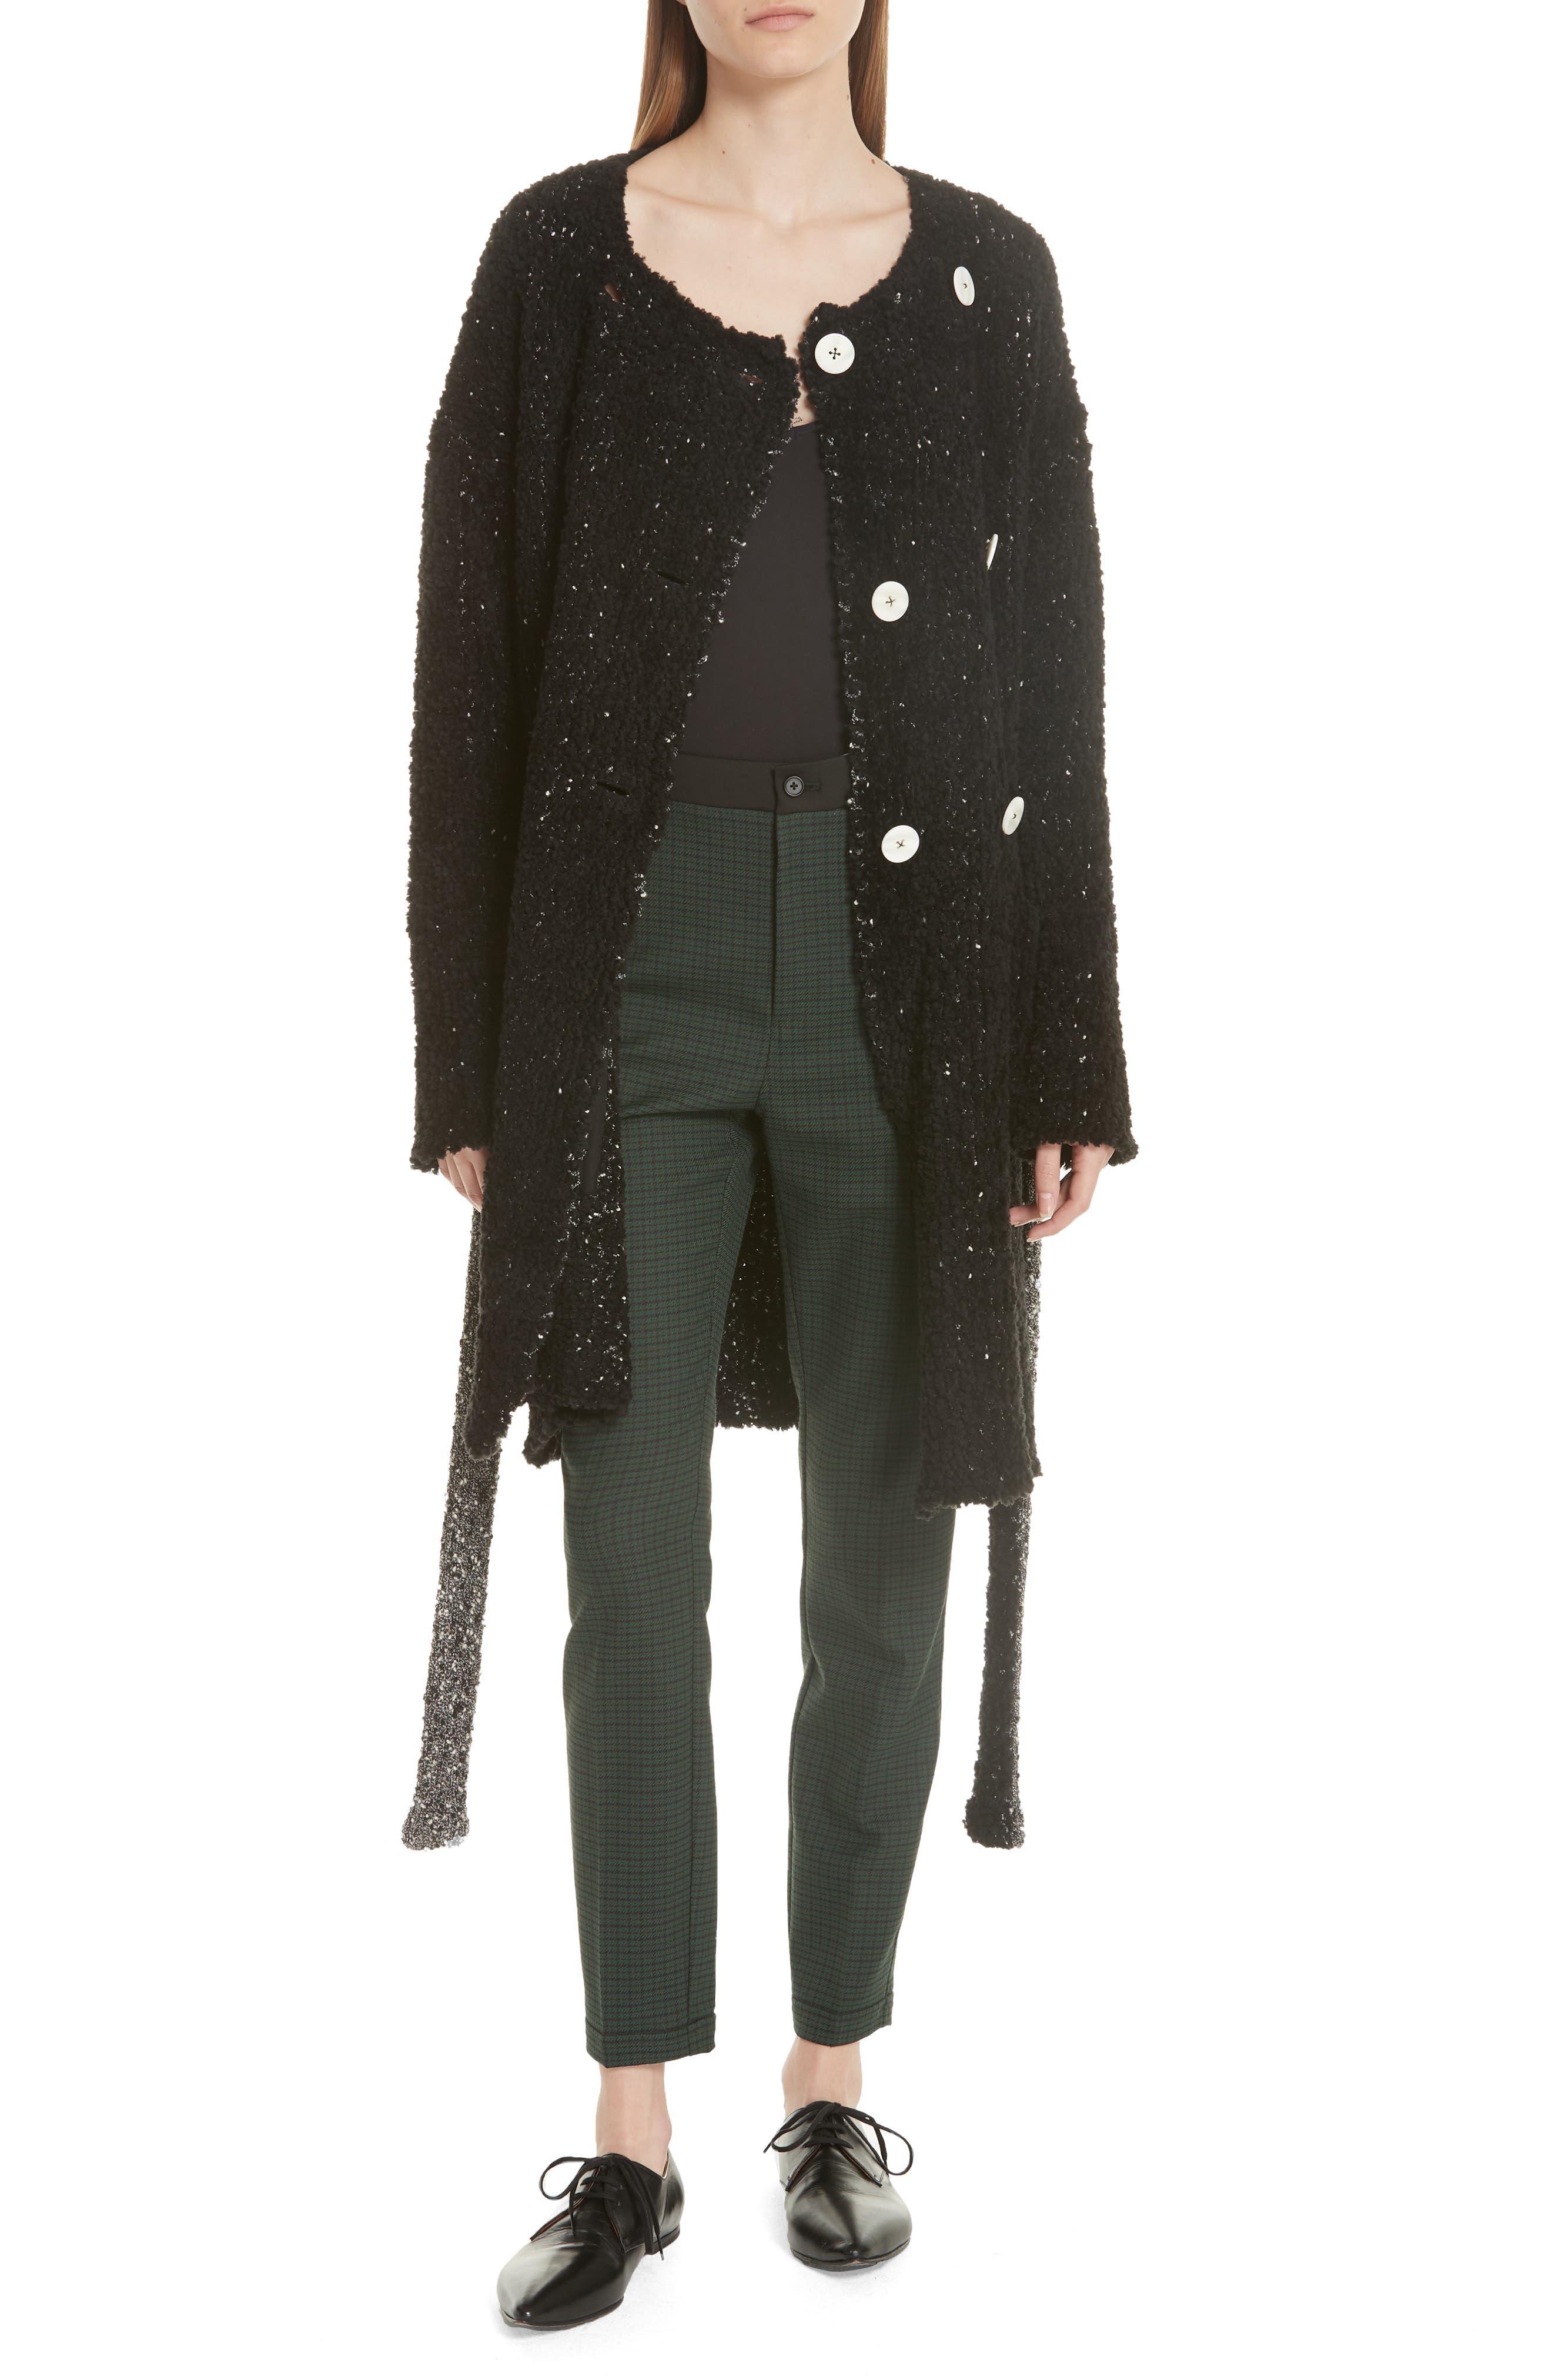 GREY JASON WU Boucle Double Breasted Cardigan in Black